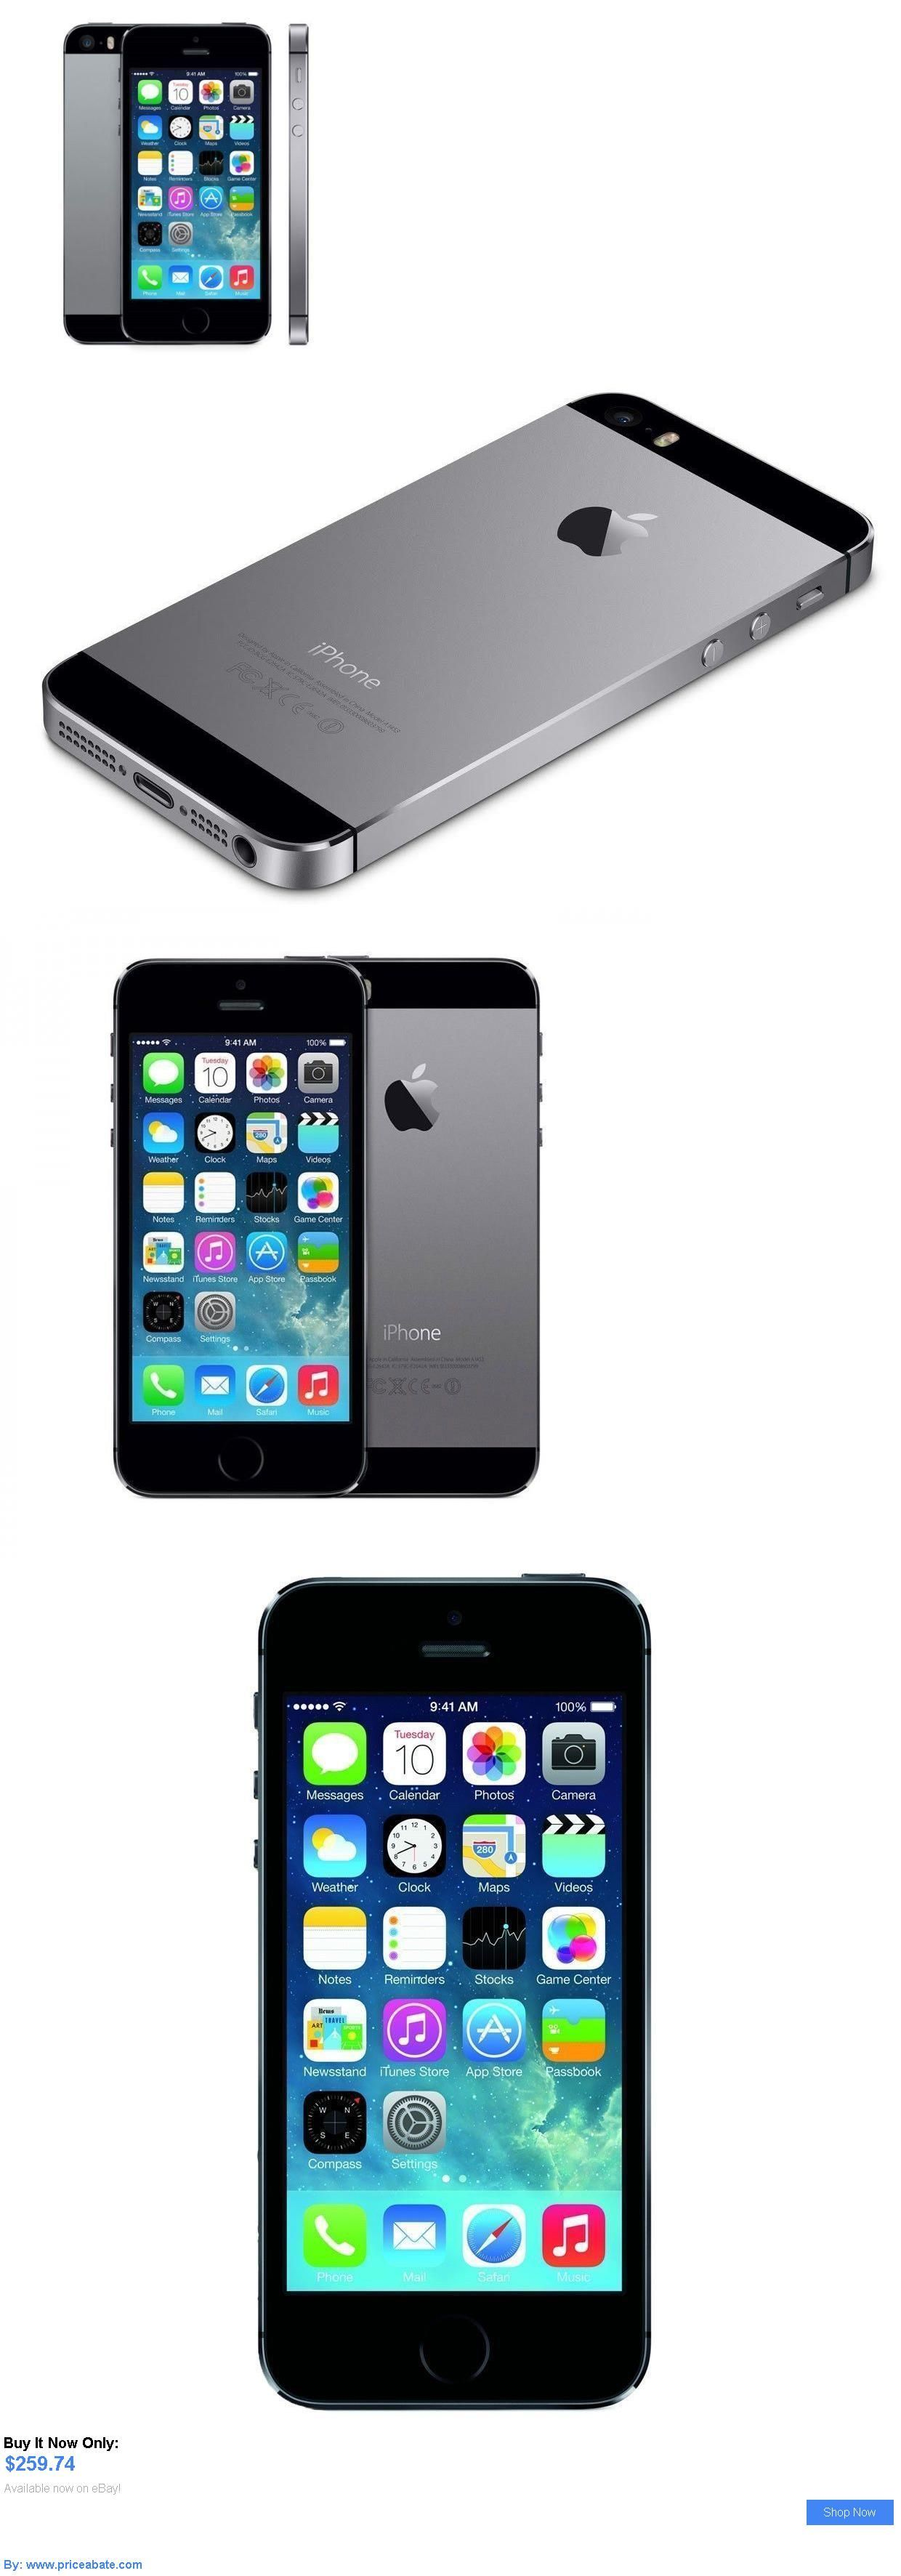 Cell Phones Iphone 5s 16gb Space Gray Factory Unlocked Black Gsm 16 Gb Apple 5 S